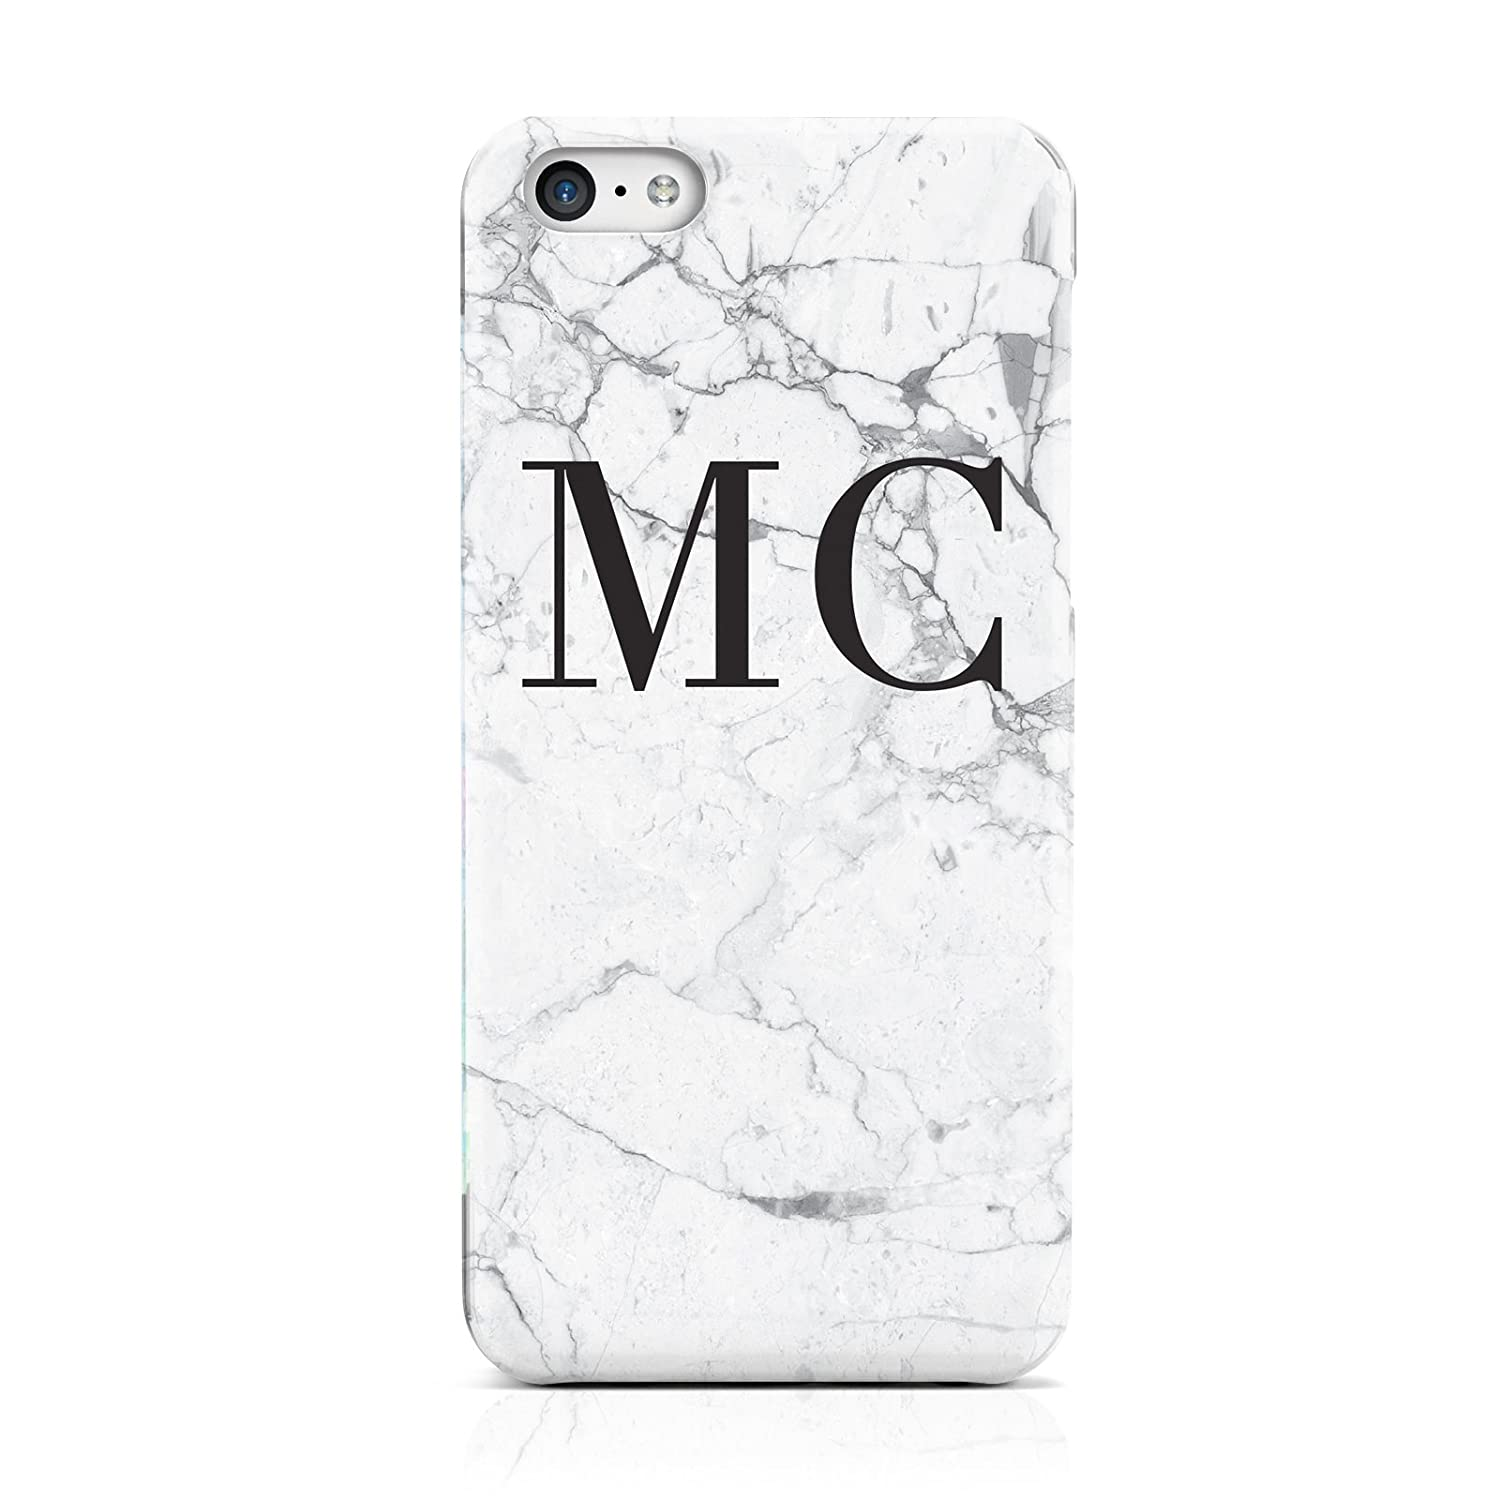 57c2ca0e9 PERSONALISED MARBLE INITIALS HARD PHONE CASE COVER FOR APPLE IPHONE 5 5S  SE: Amazon.co.uk: Electronics